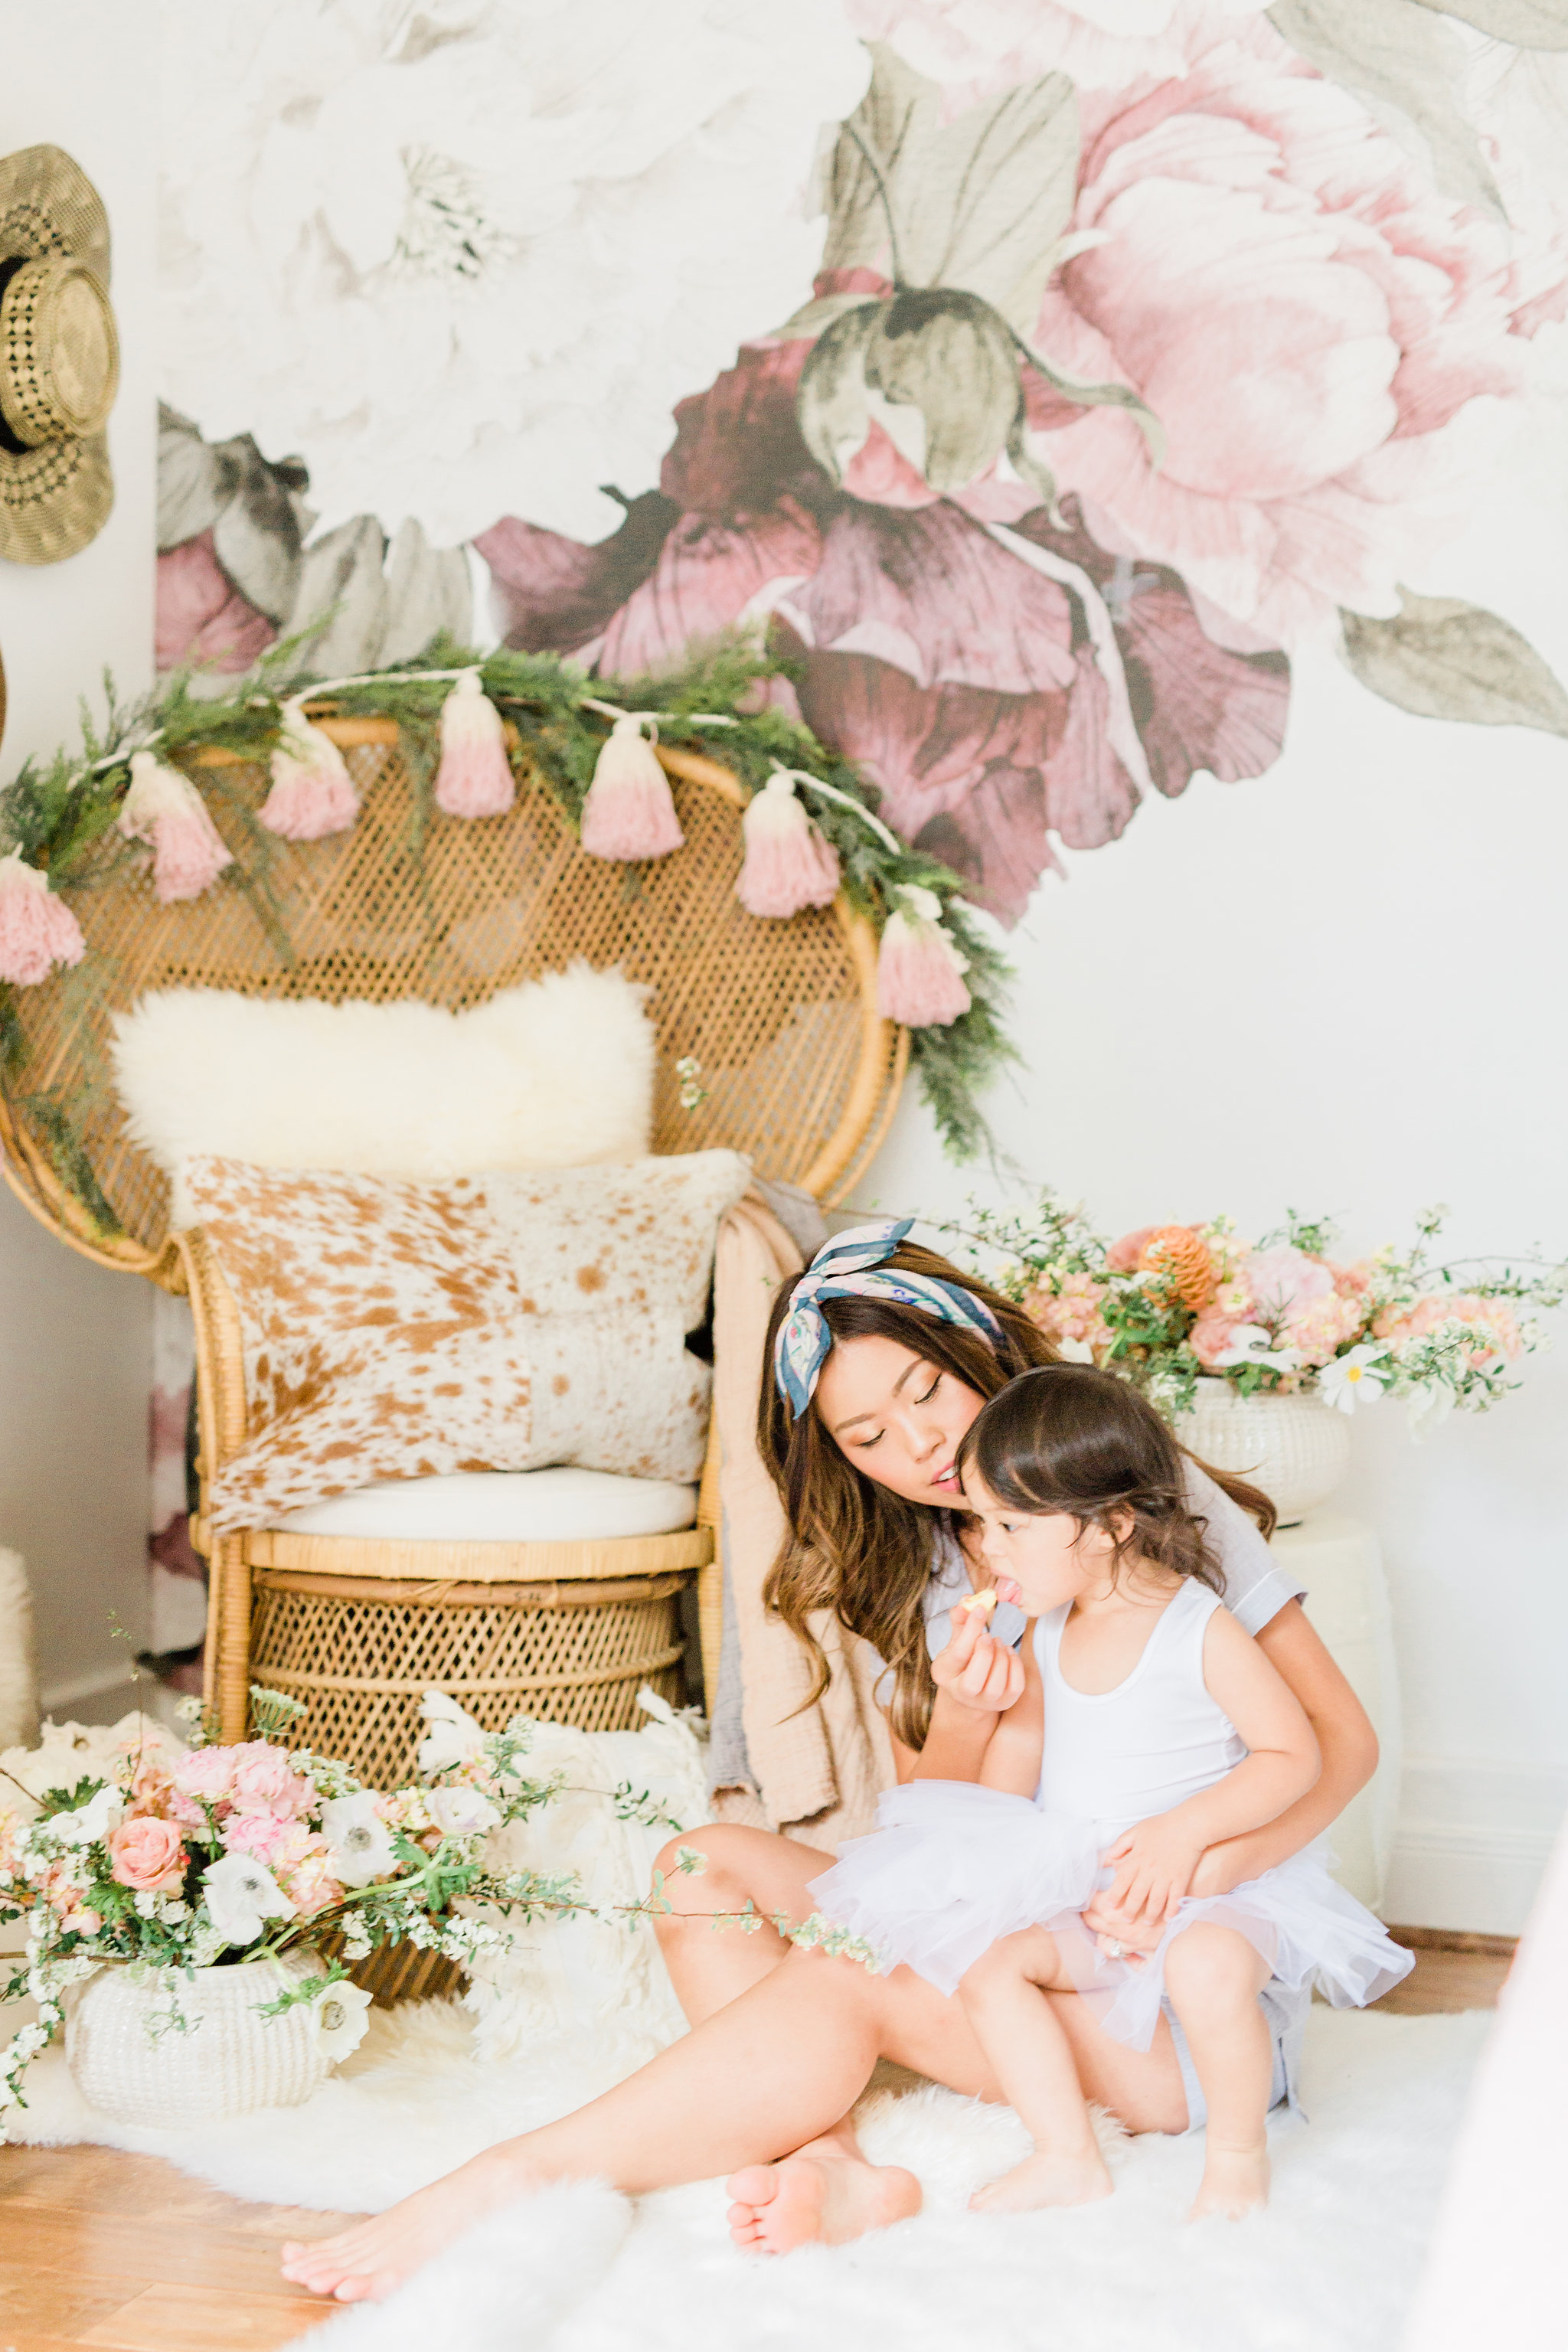 Neutral Blush and White Spring Master Bedroom Makeover, How to make/dress a bed in 3 steps with peacock chair